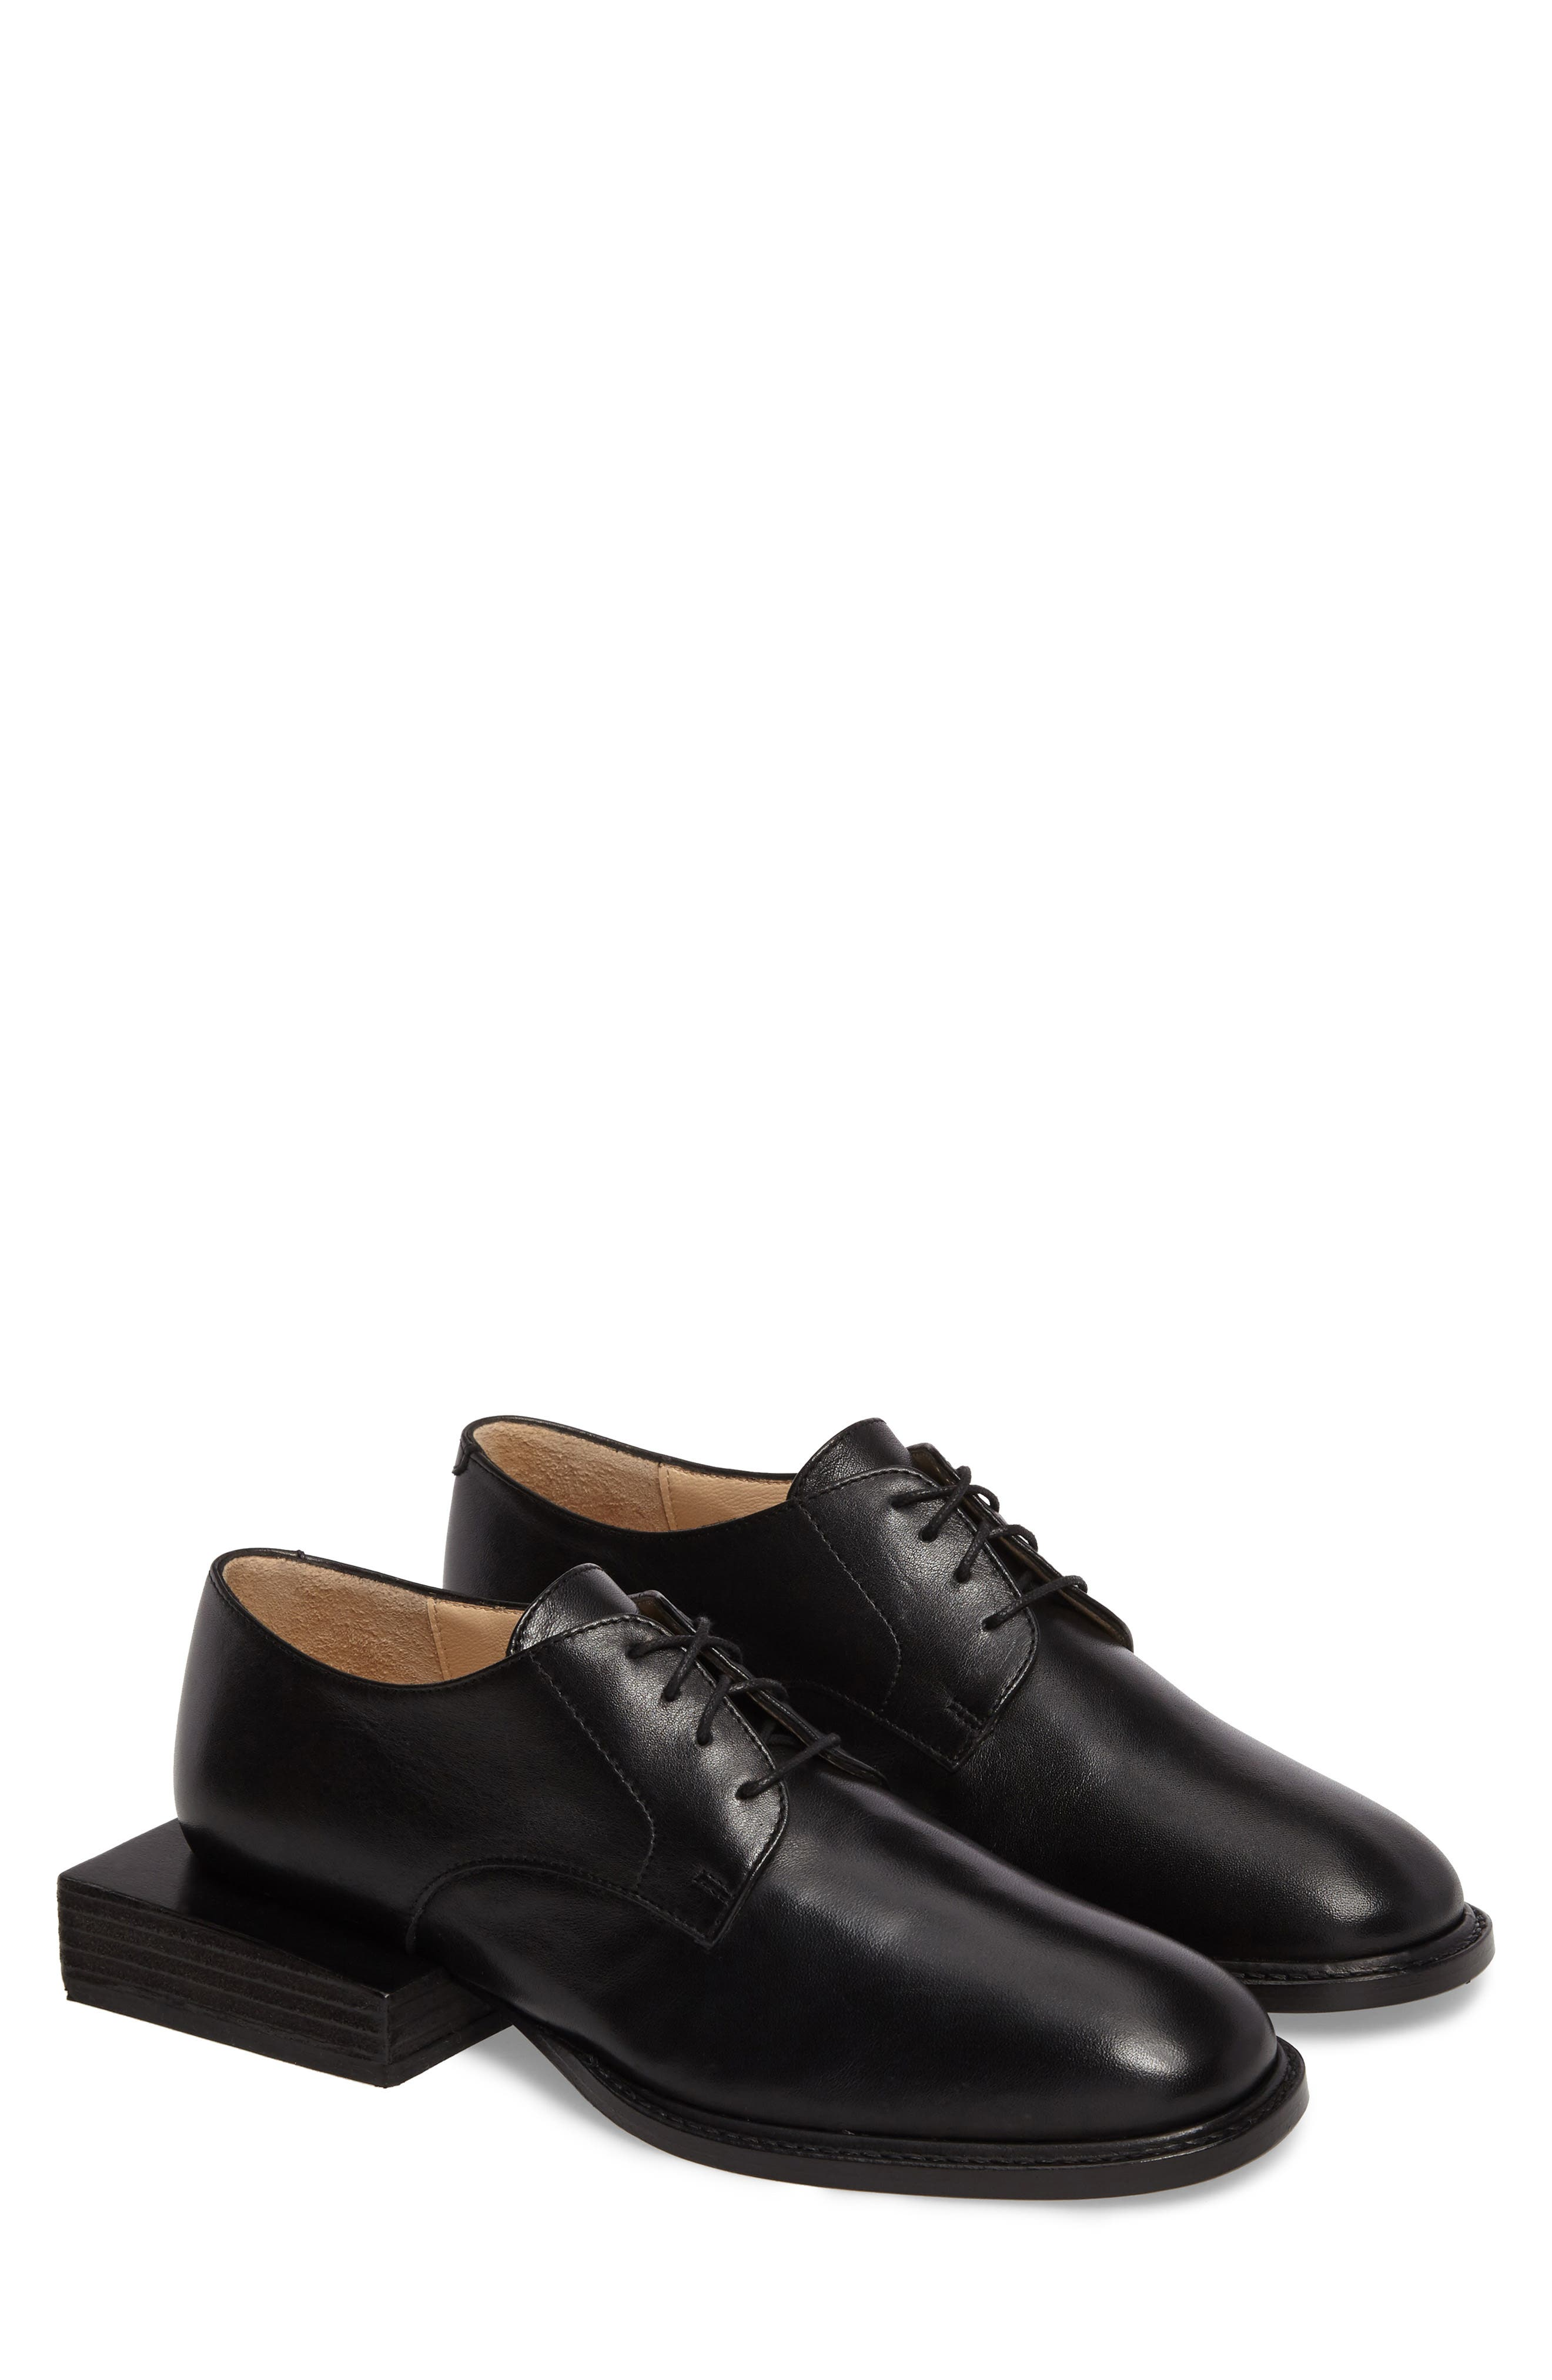 Alternate Image 1 Selected - Jacquemus Les Chaussures Clown Oxford (Women)